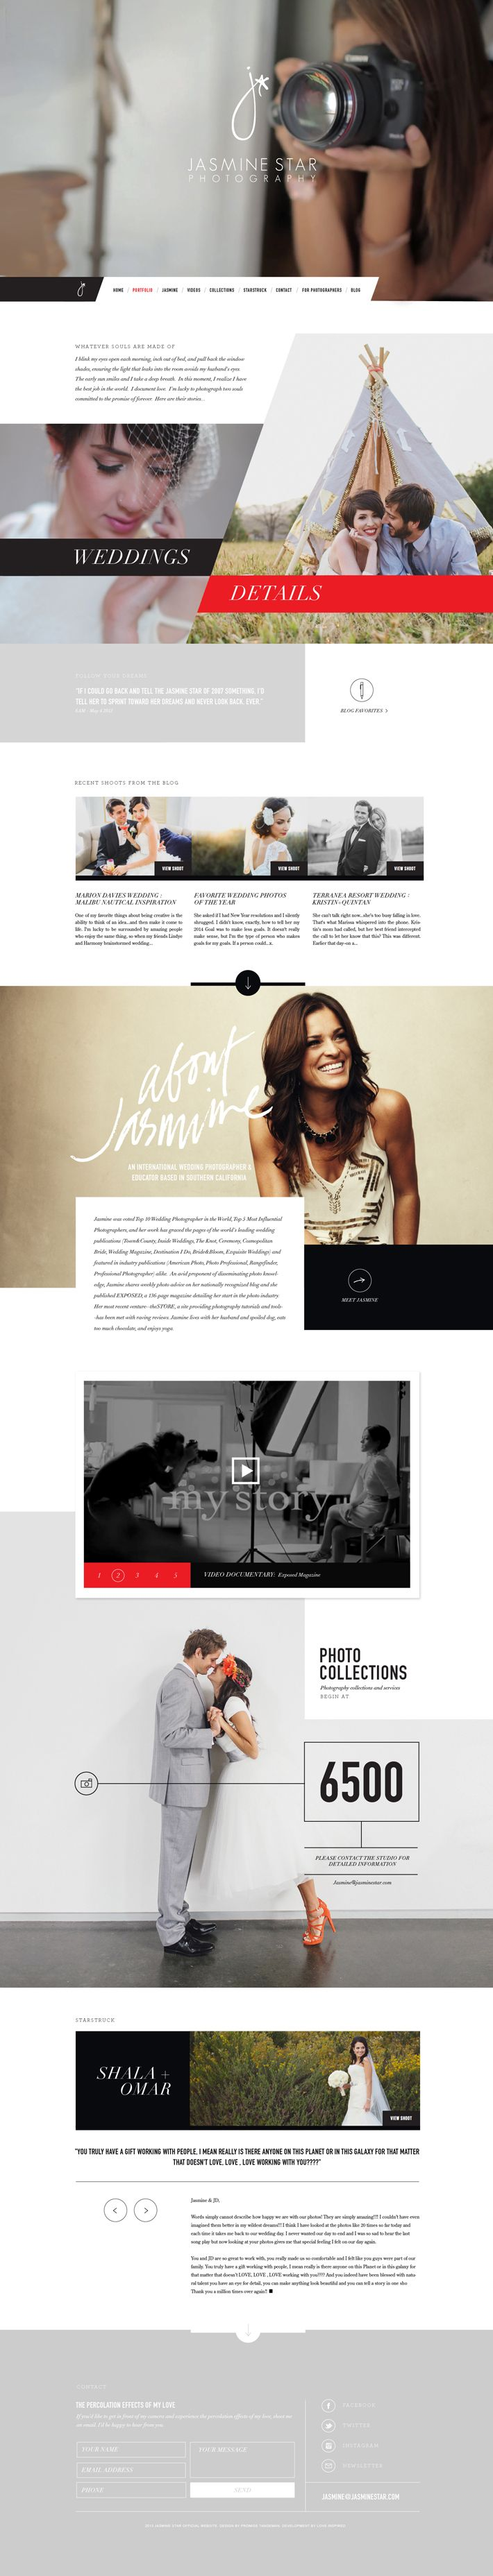 Jasmine Star Website  |  Designed by Promise Tangeman